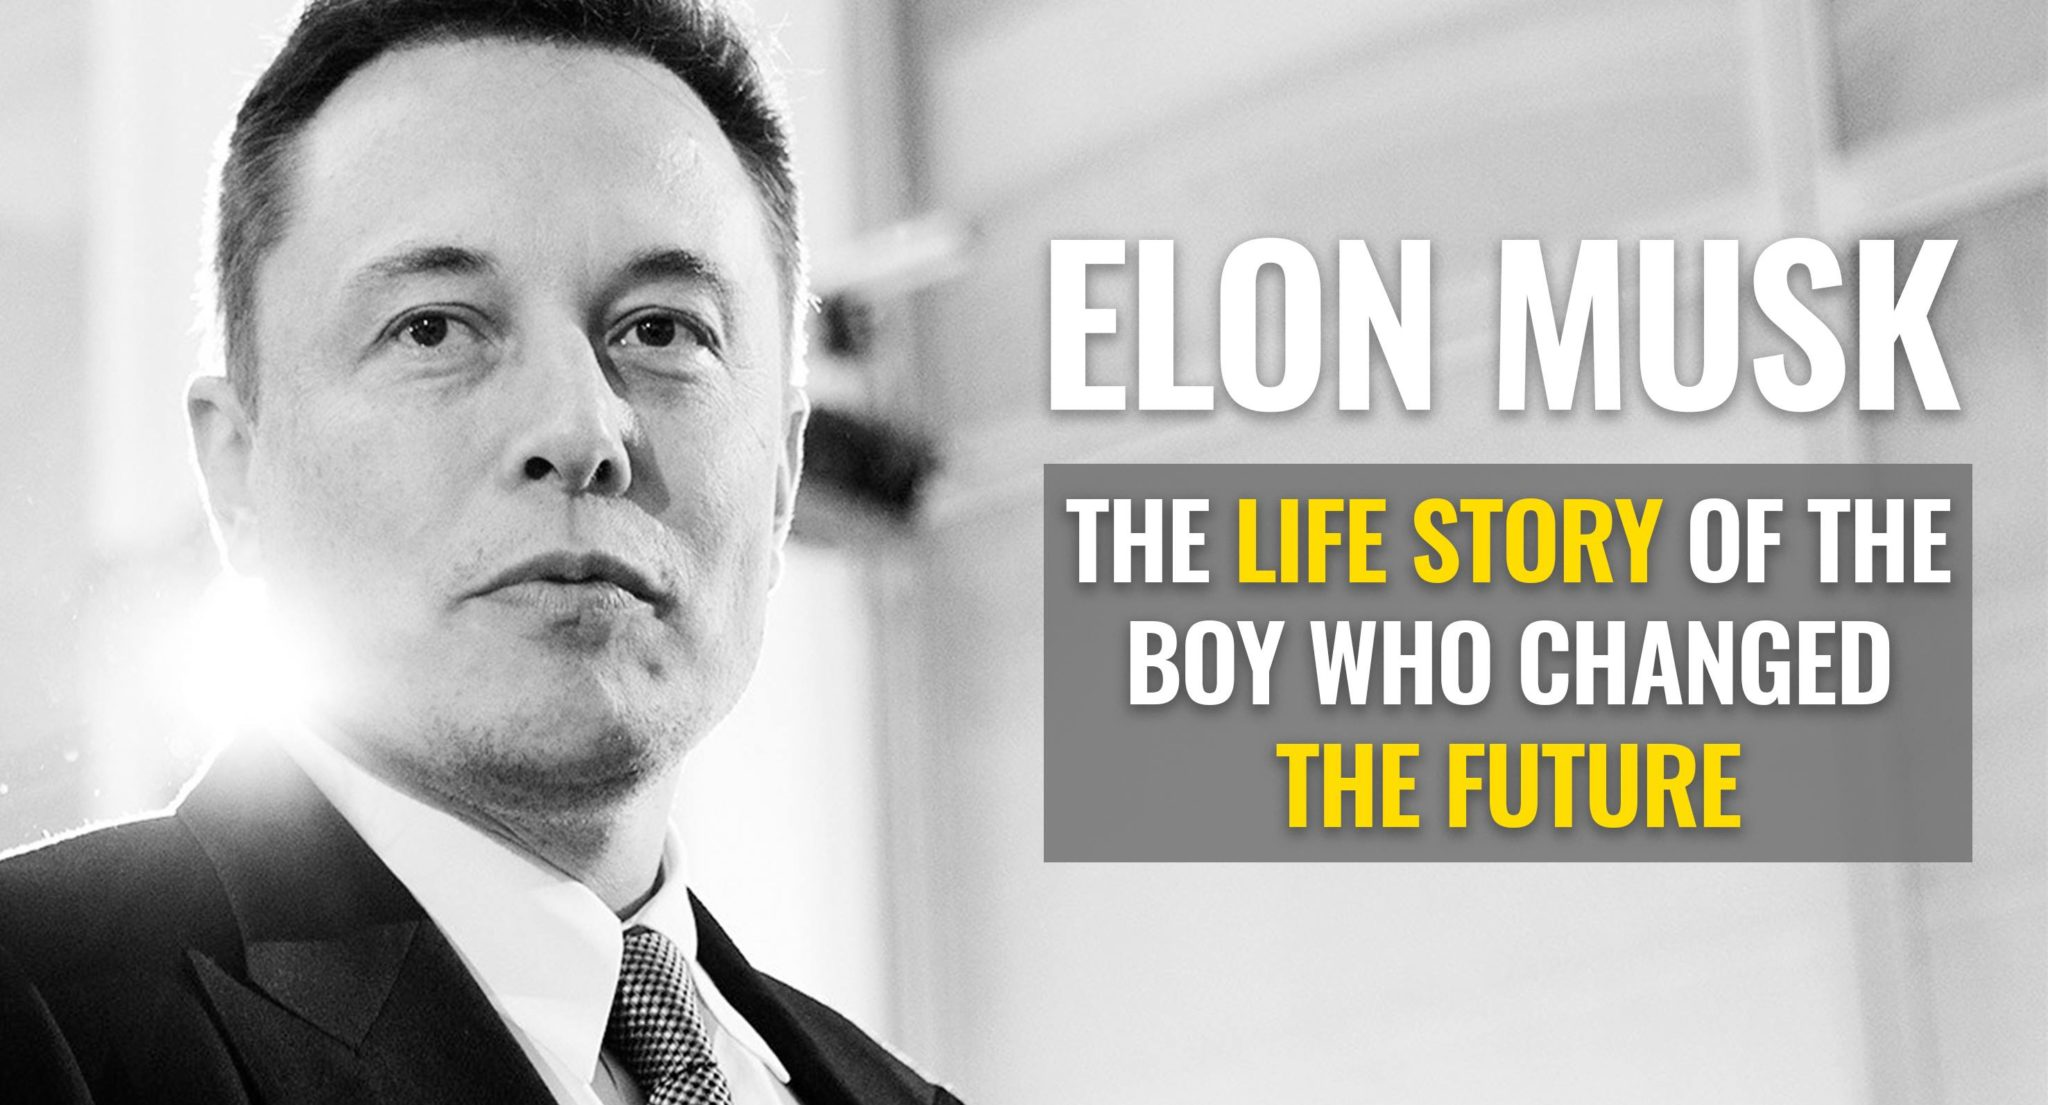 Elon Musk: The Life Story of The Boy Who Changed the Future